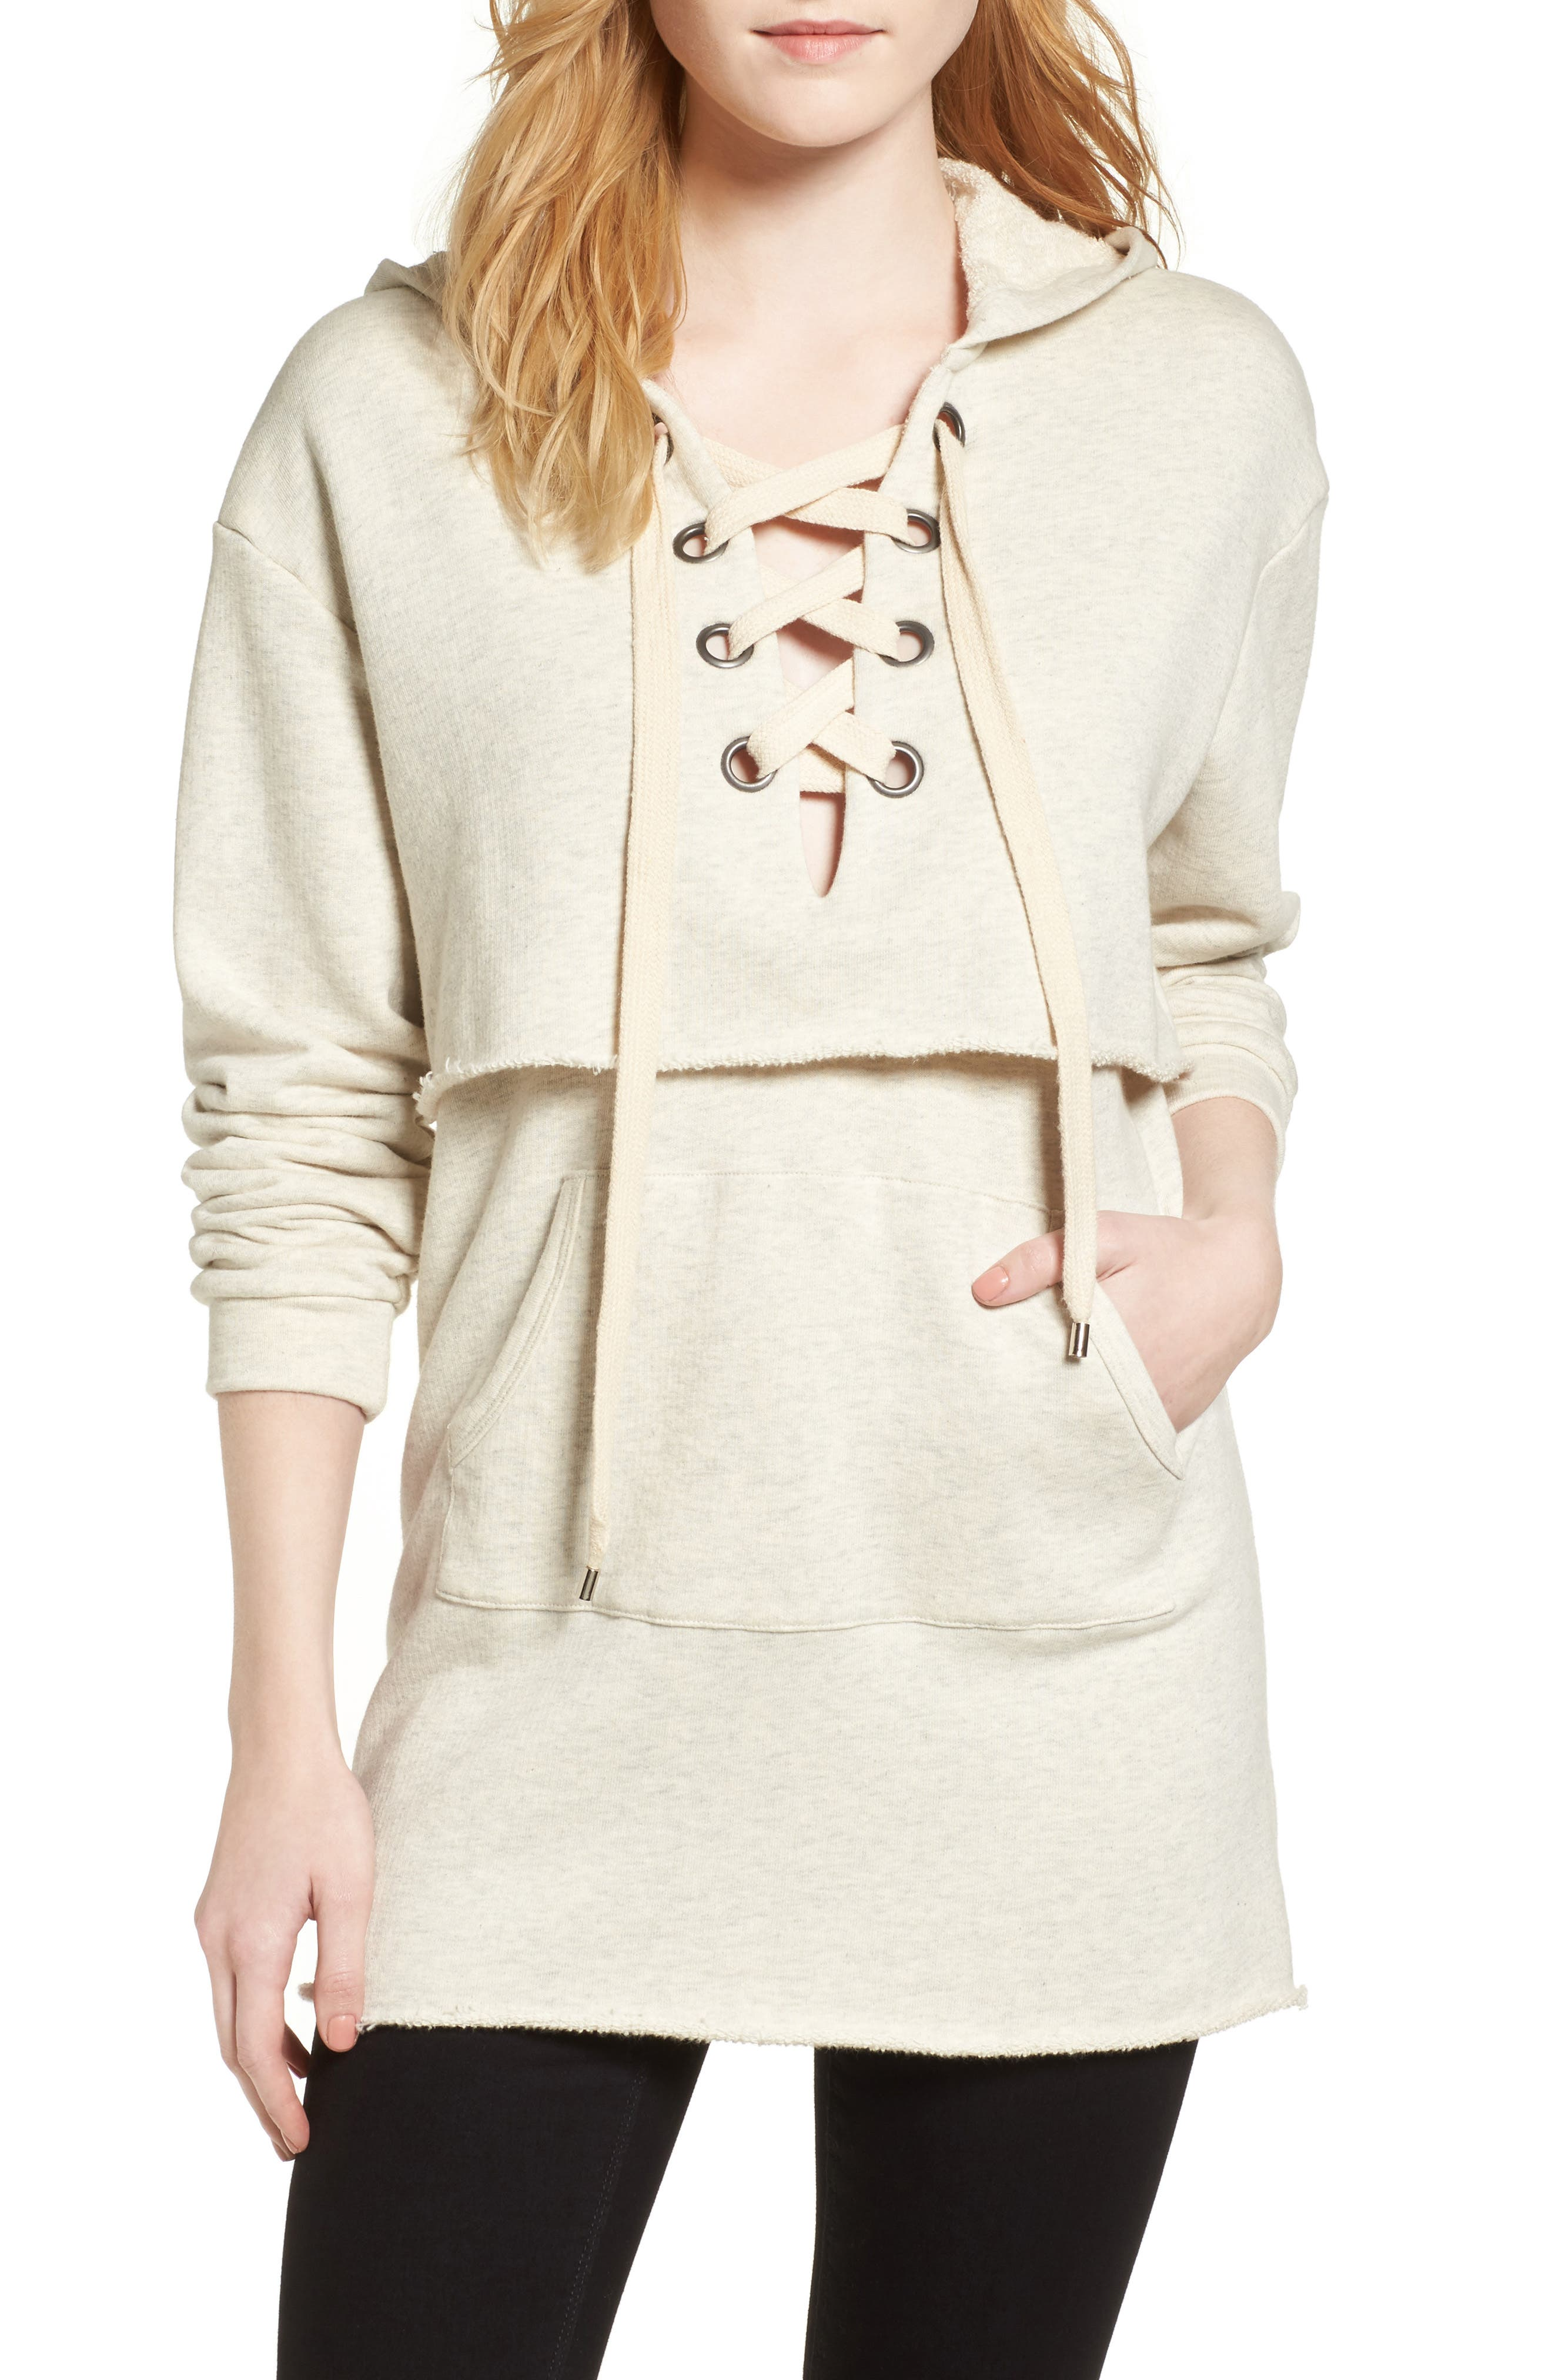 KENDALL + KYLIE Layered Sweatshirt Dress